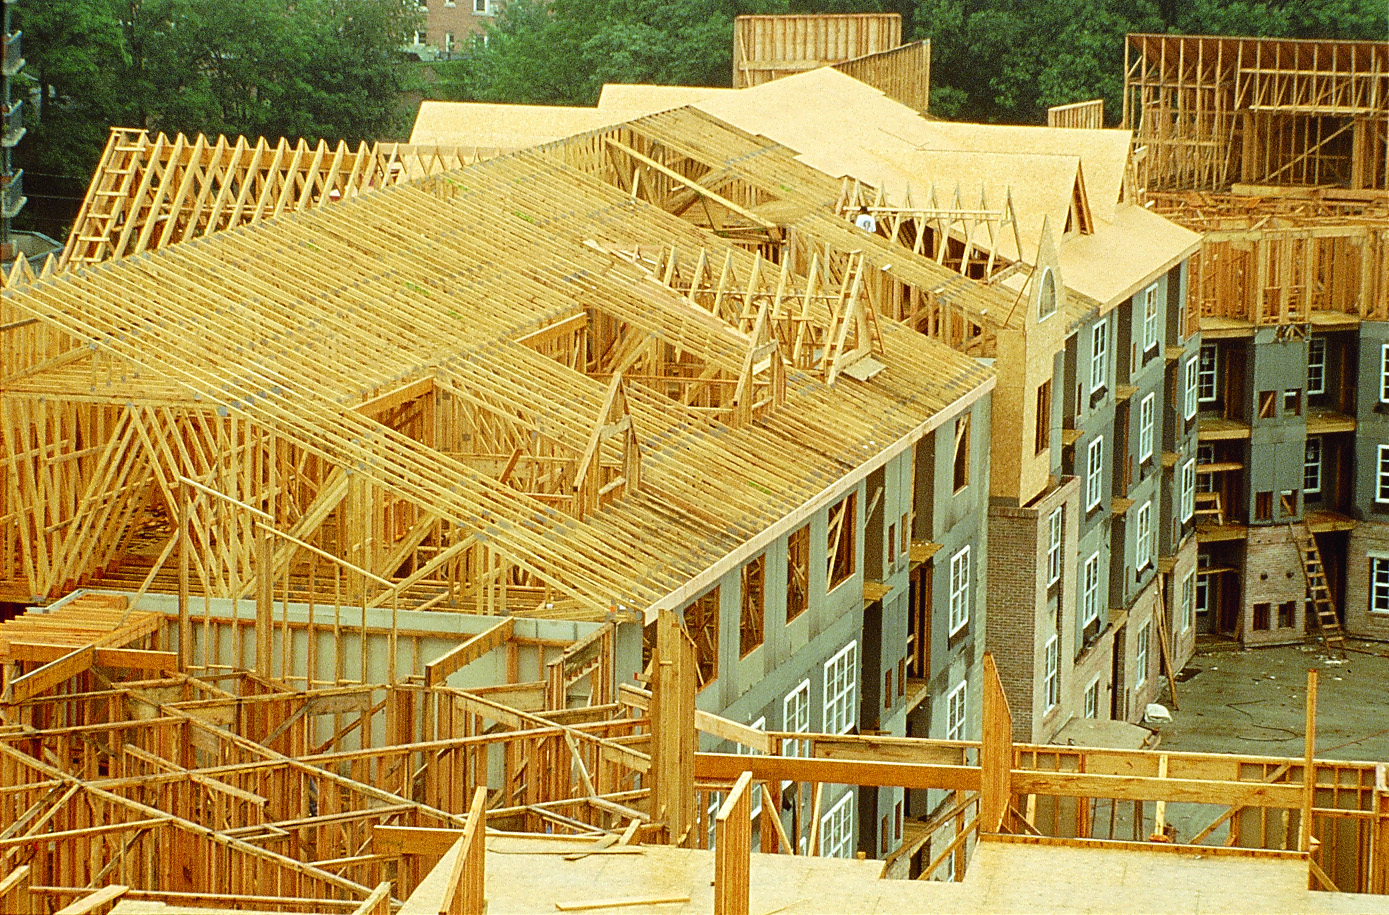 FitzGerald Hosts Seminar on Multi-Story Wood Frame Construction